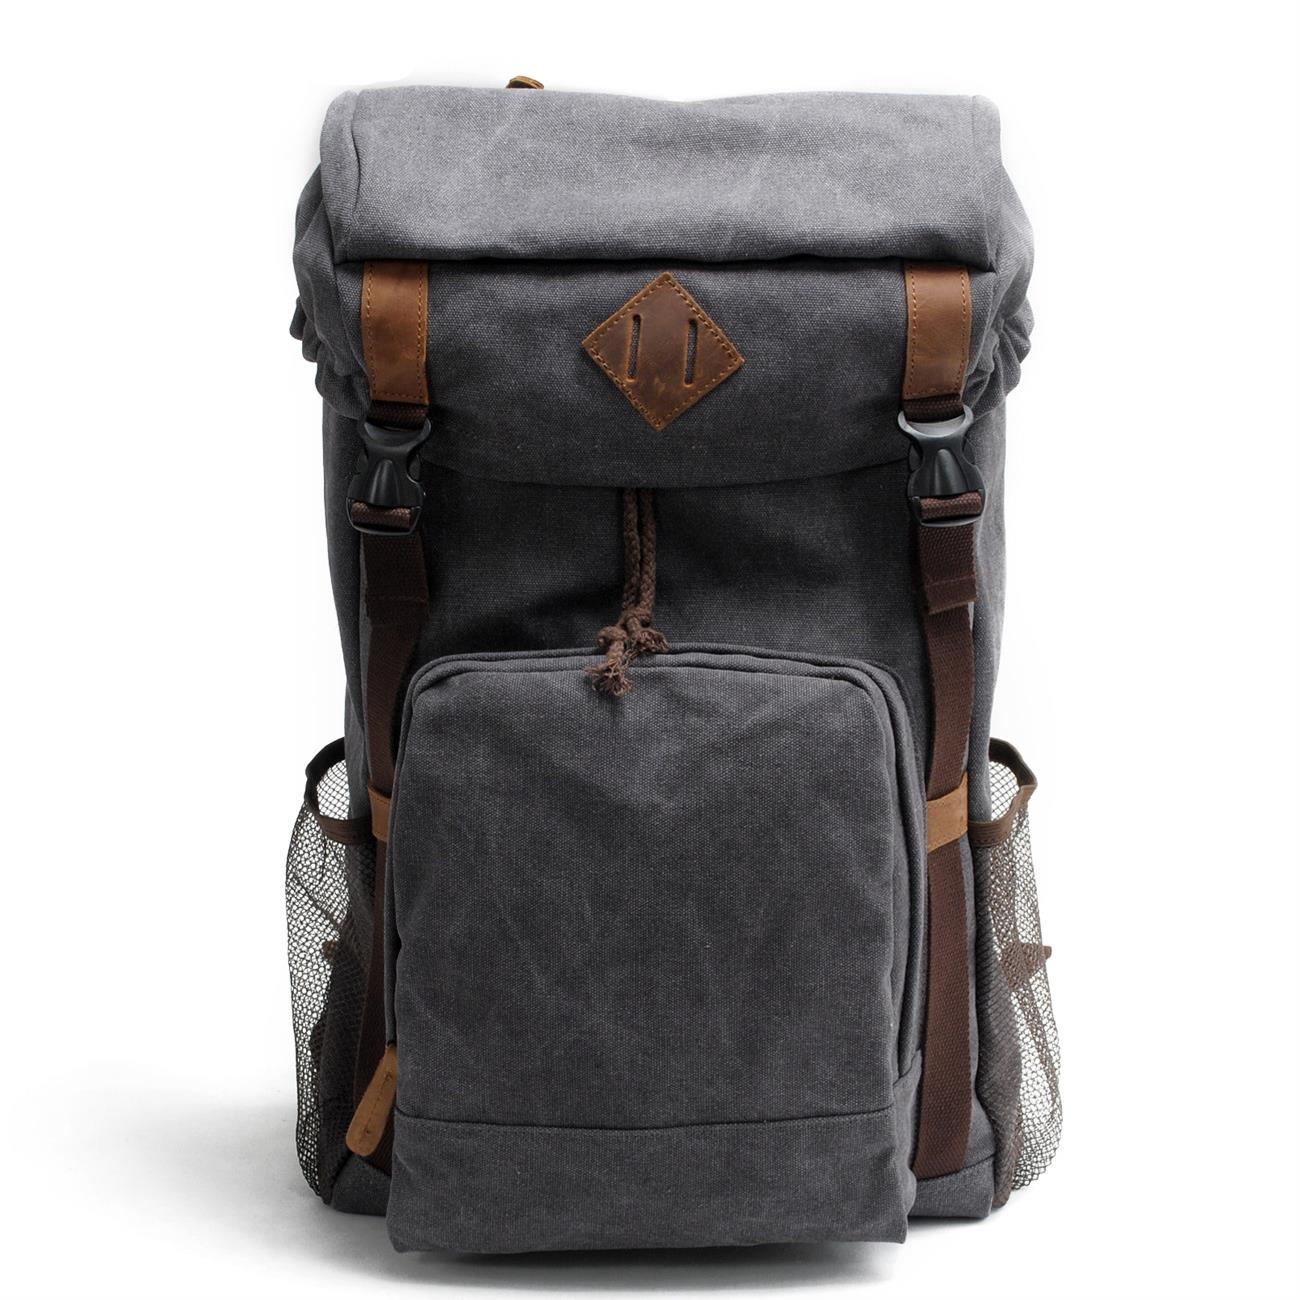 2018 New Arrival Large 17' Laptop Backpack Men Travel Luggage Bags Vintage Canvas Camp Backpacks Student School Bags Rucksack unisoul travel backpack bag 2016 new designed men s backpacks laptop computer canvas bags men backpack vintage school rucksack